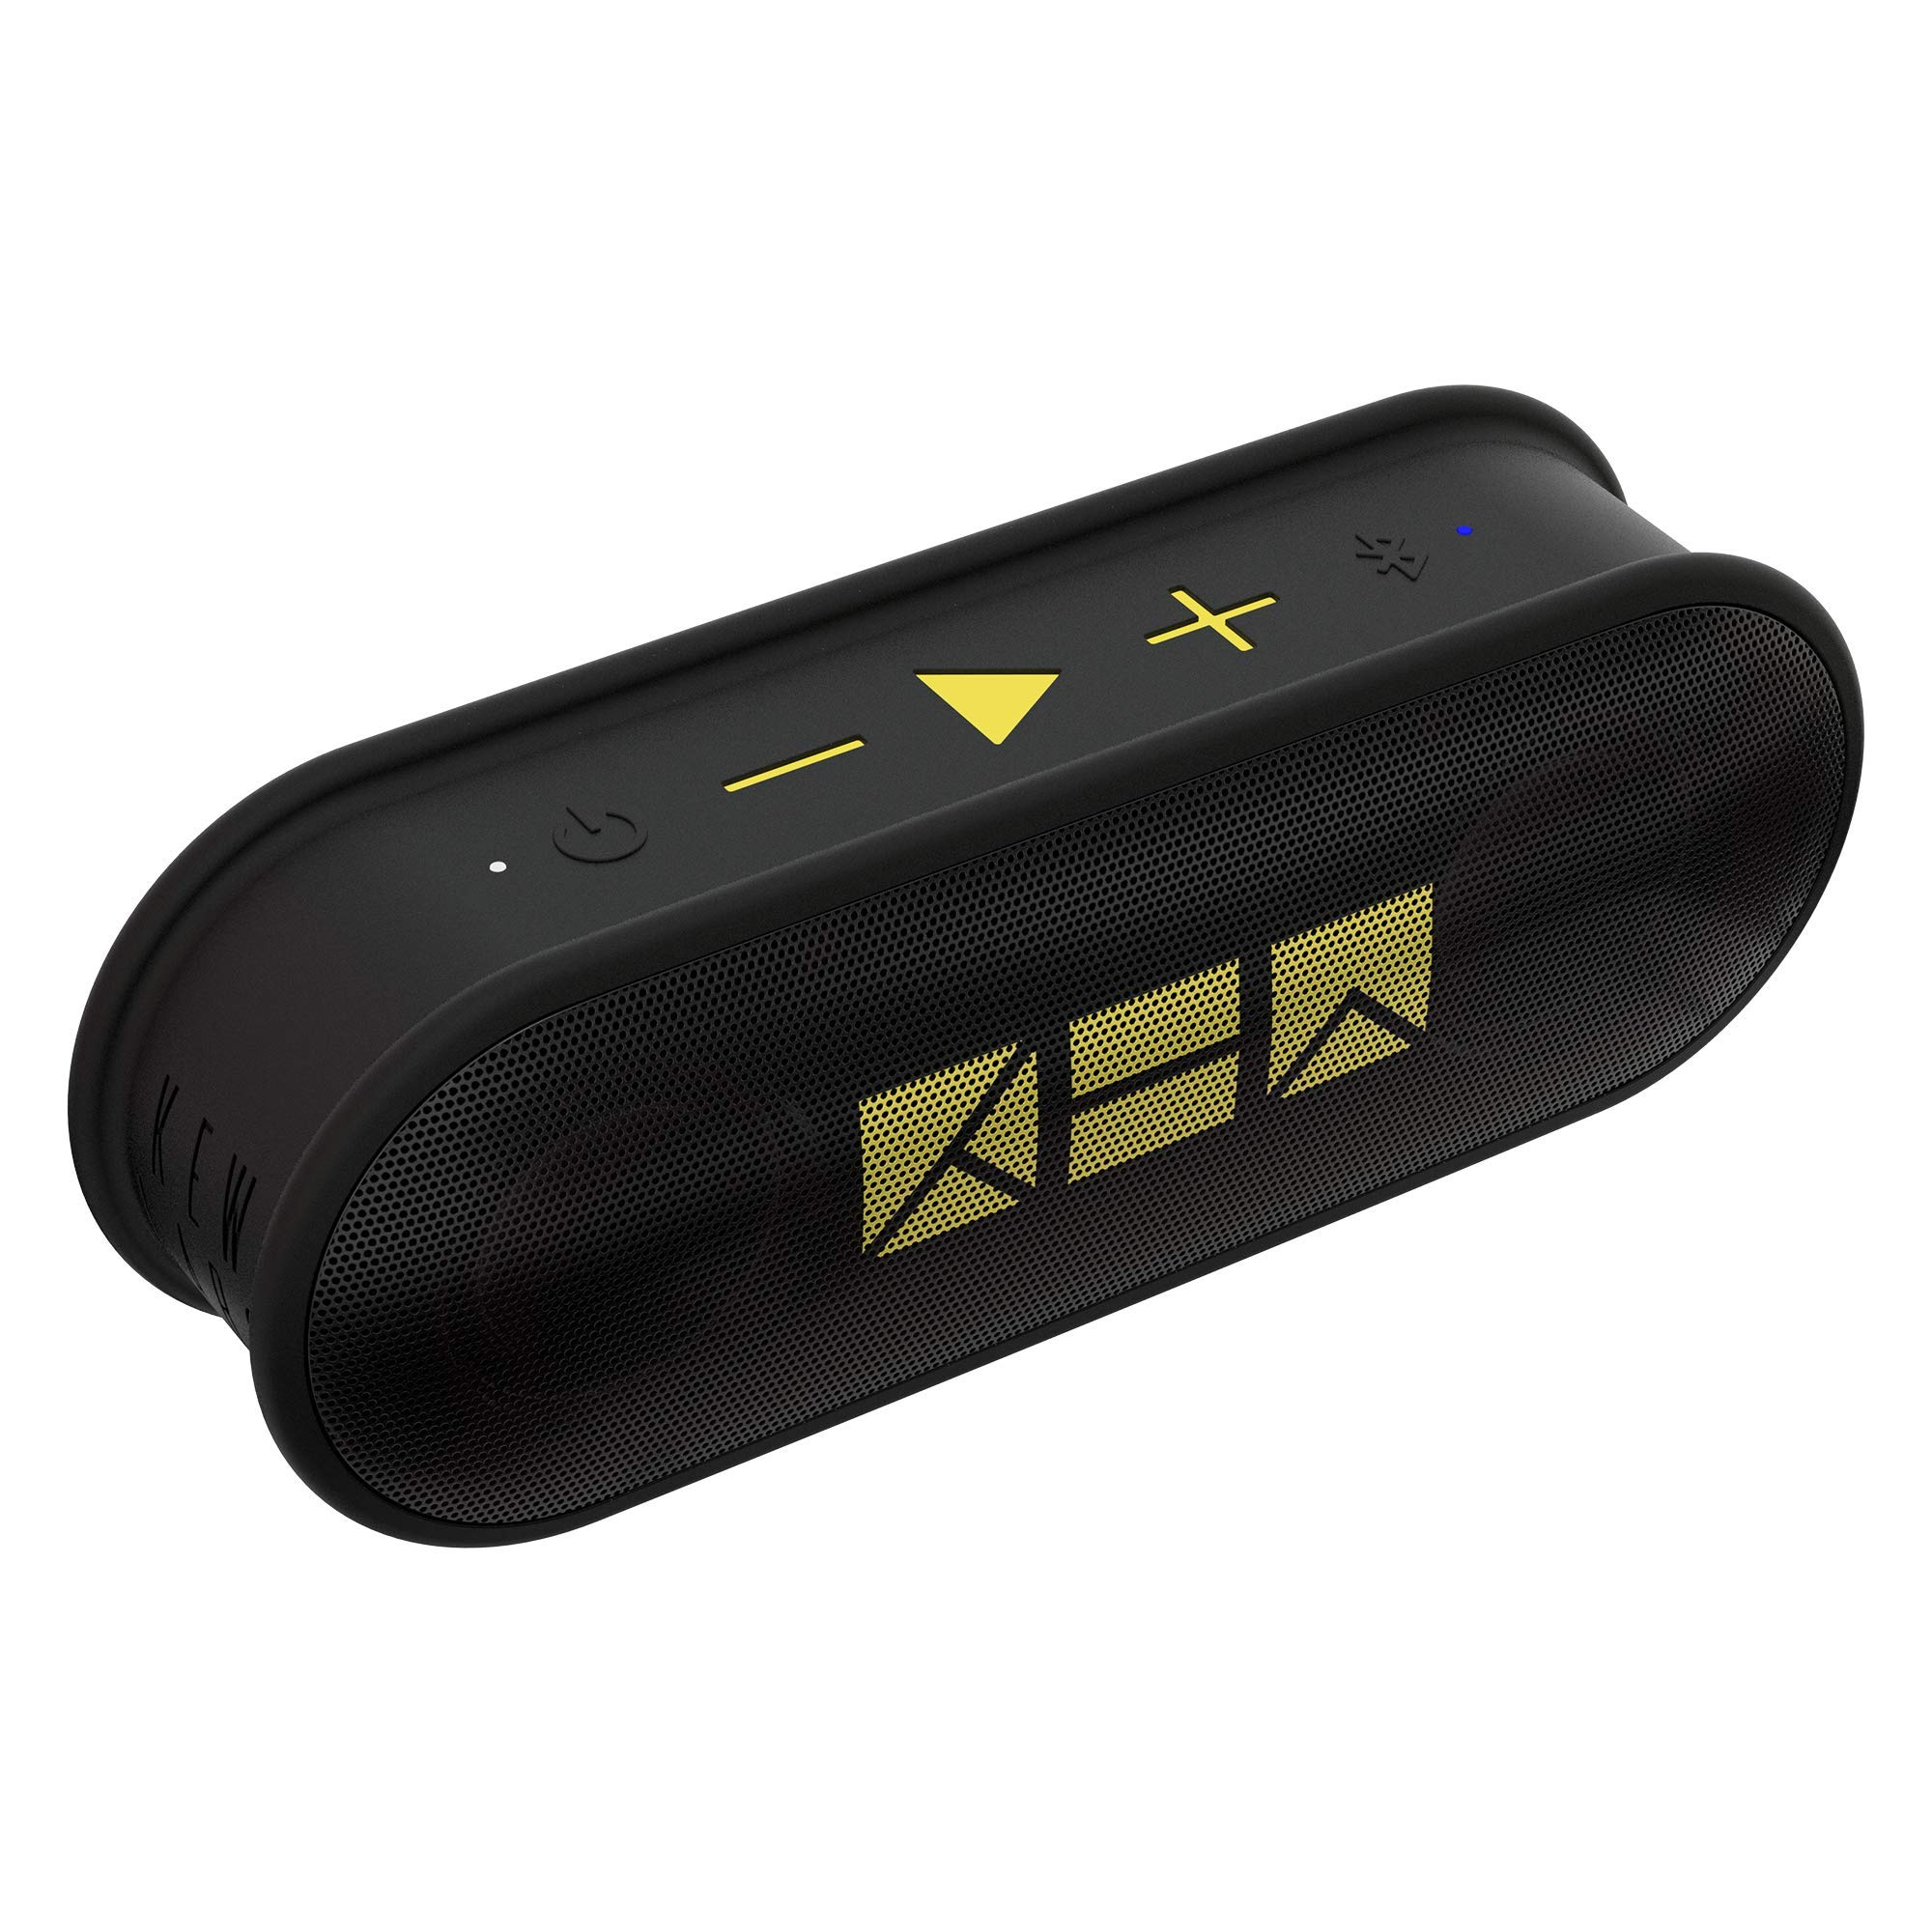 Kew Labs K1 Wireless Portable Bluetooth Speaker - Premium Quality Sound and Bass - Waterproof Pill Design - 12hr Battery Life - Featuring Built-in Mic for Calls (Black) by Kew Labs